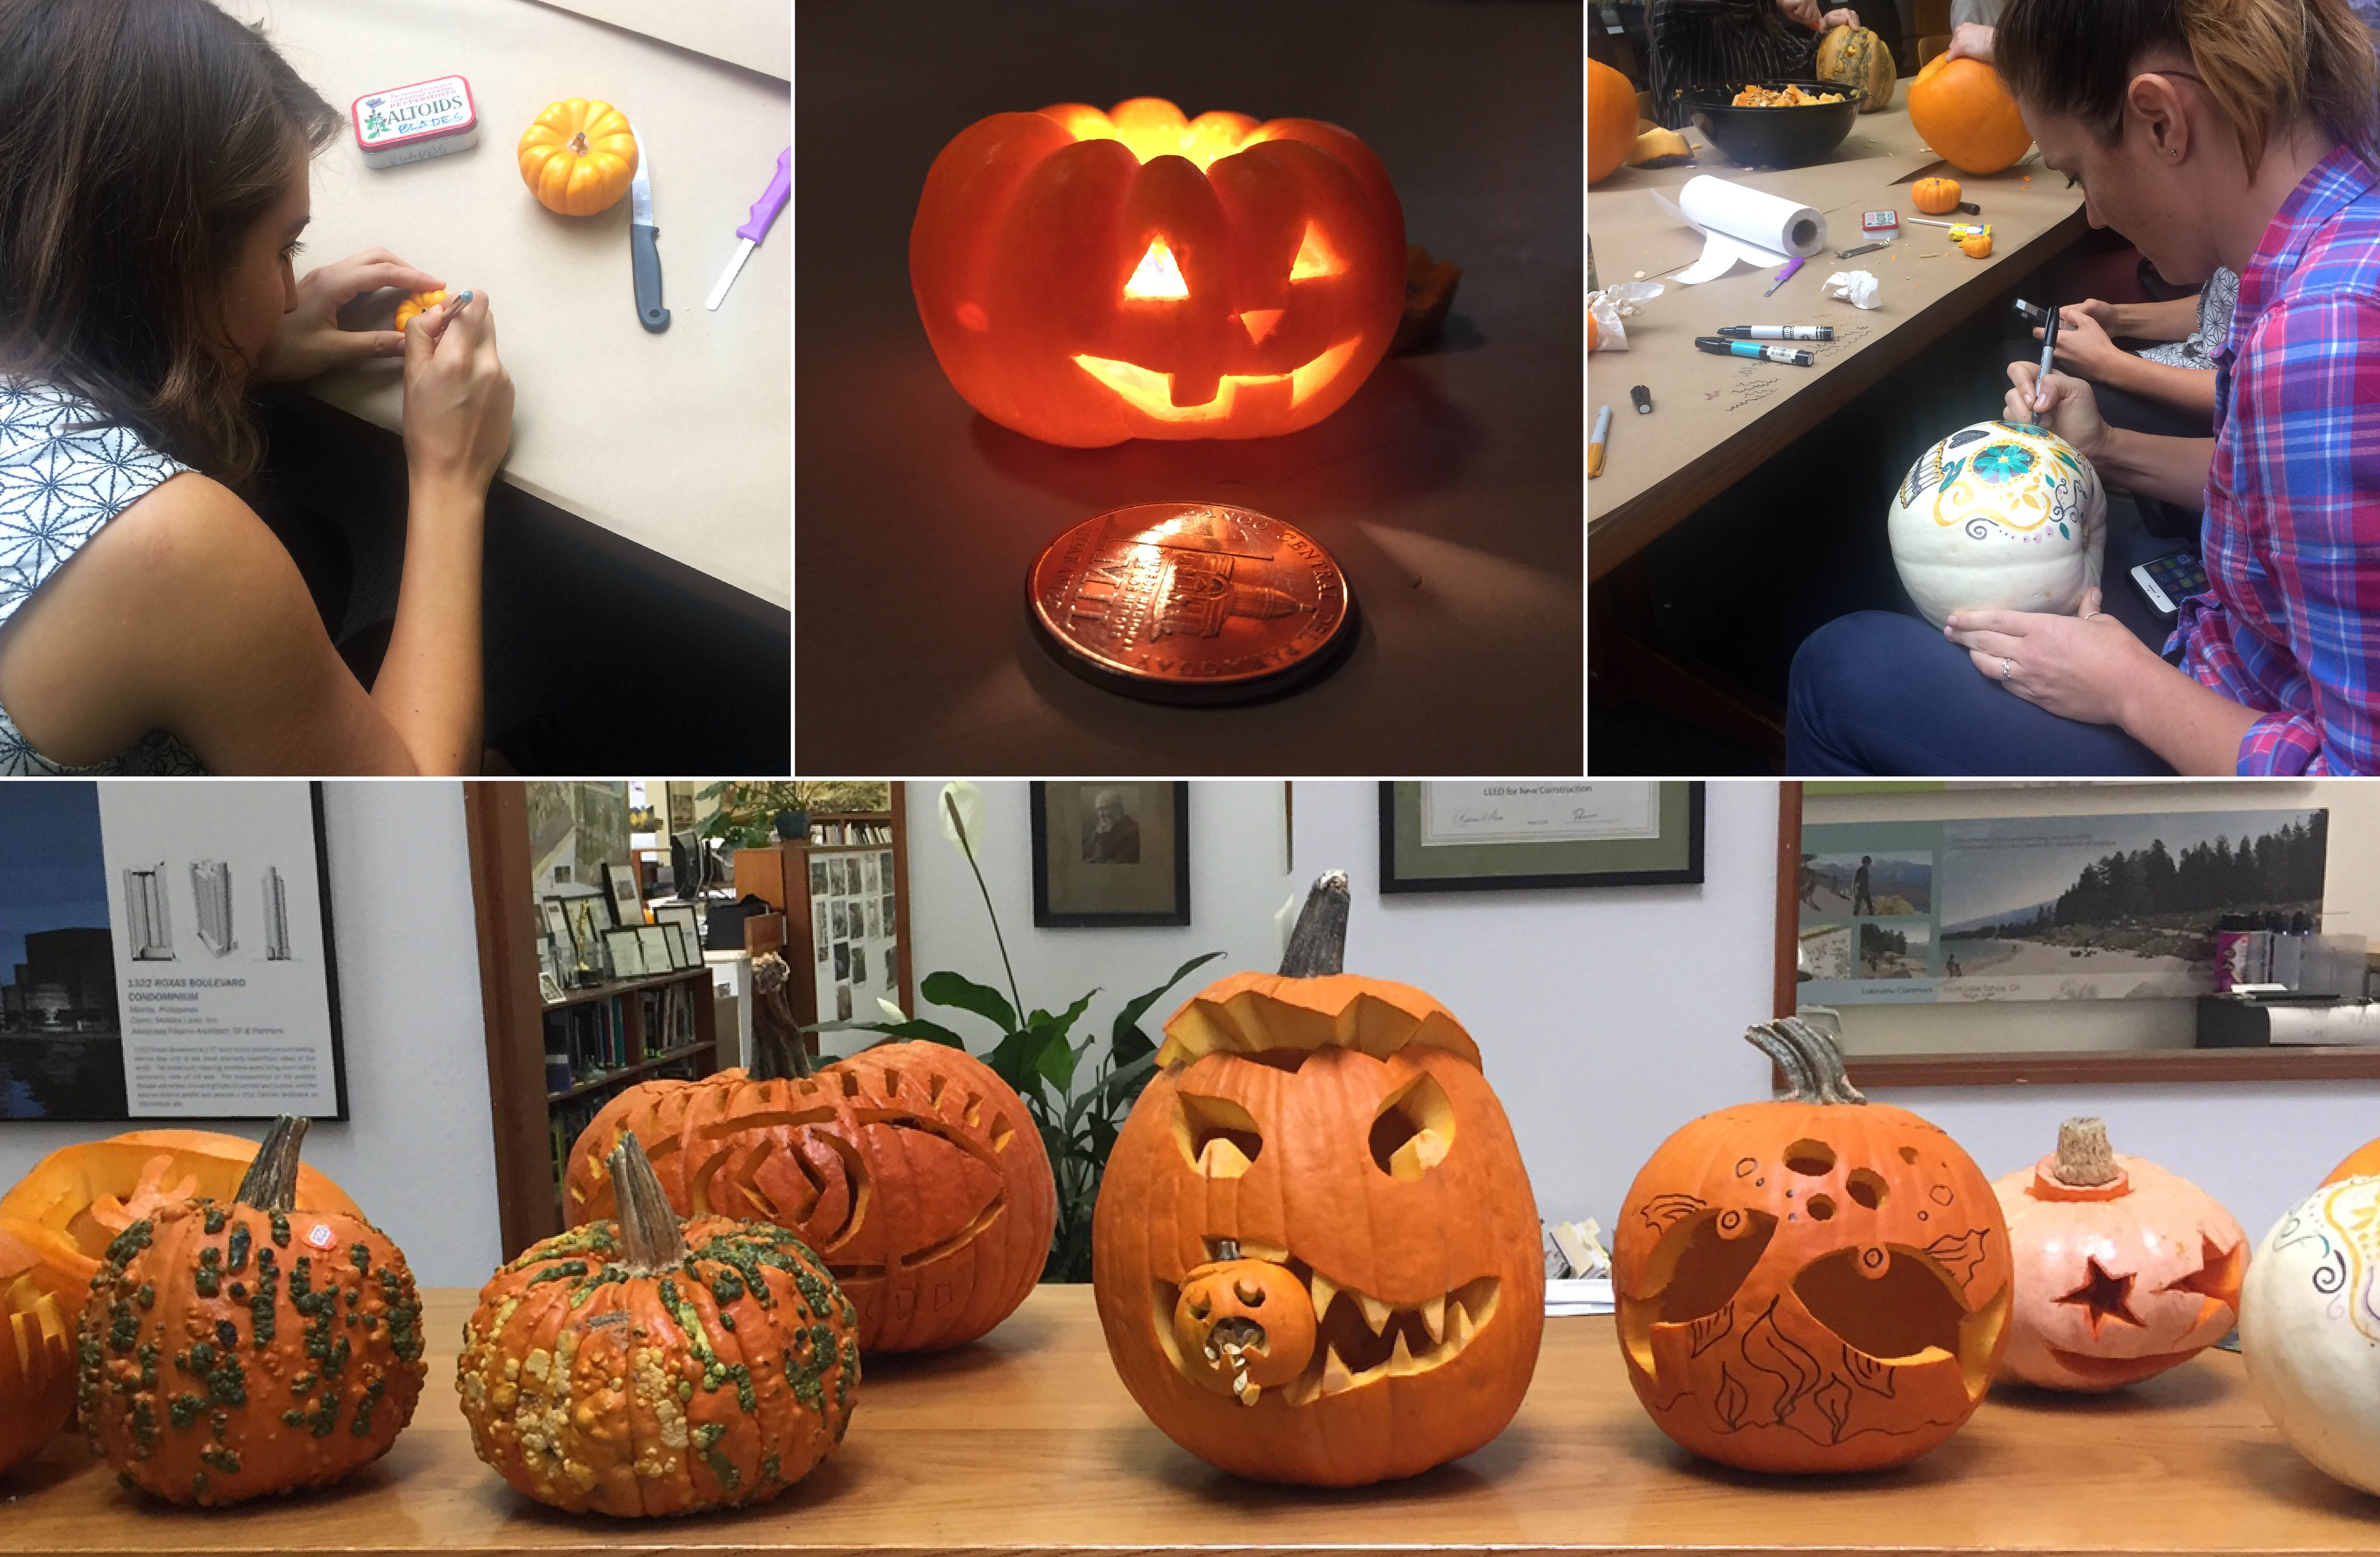 Annual Pumpkin Carving Contest